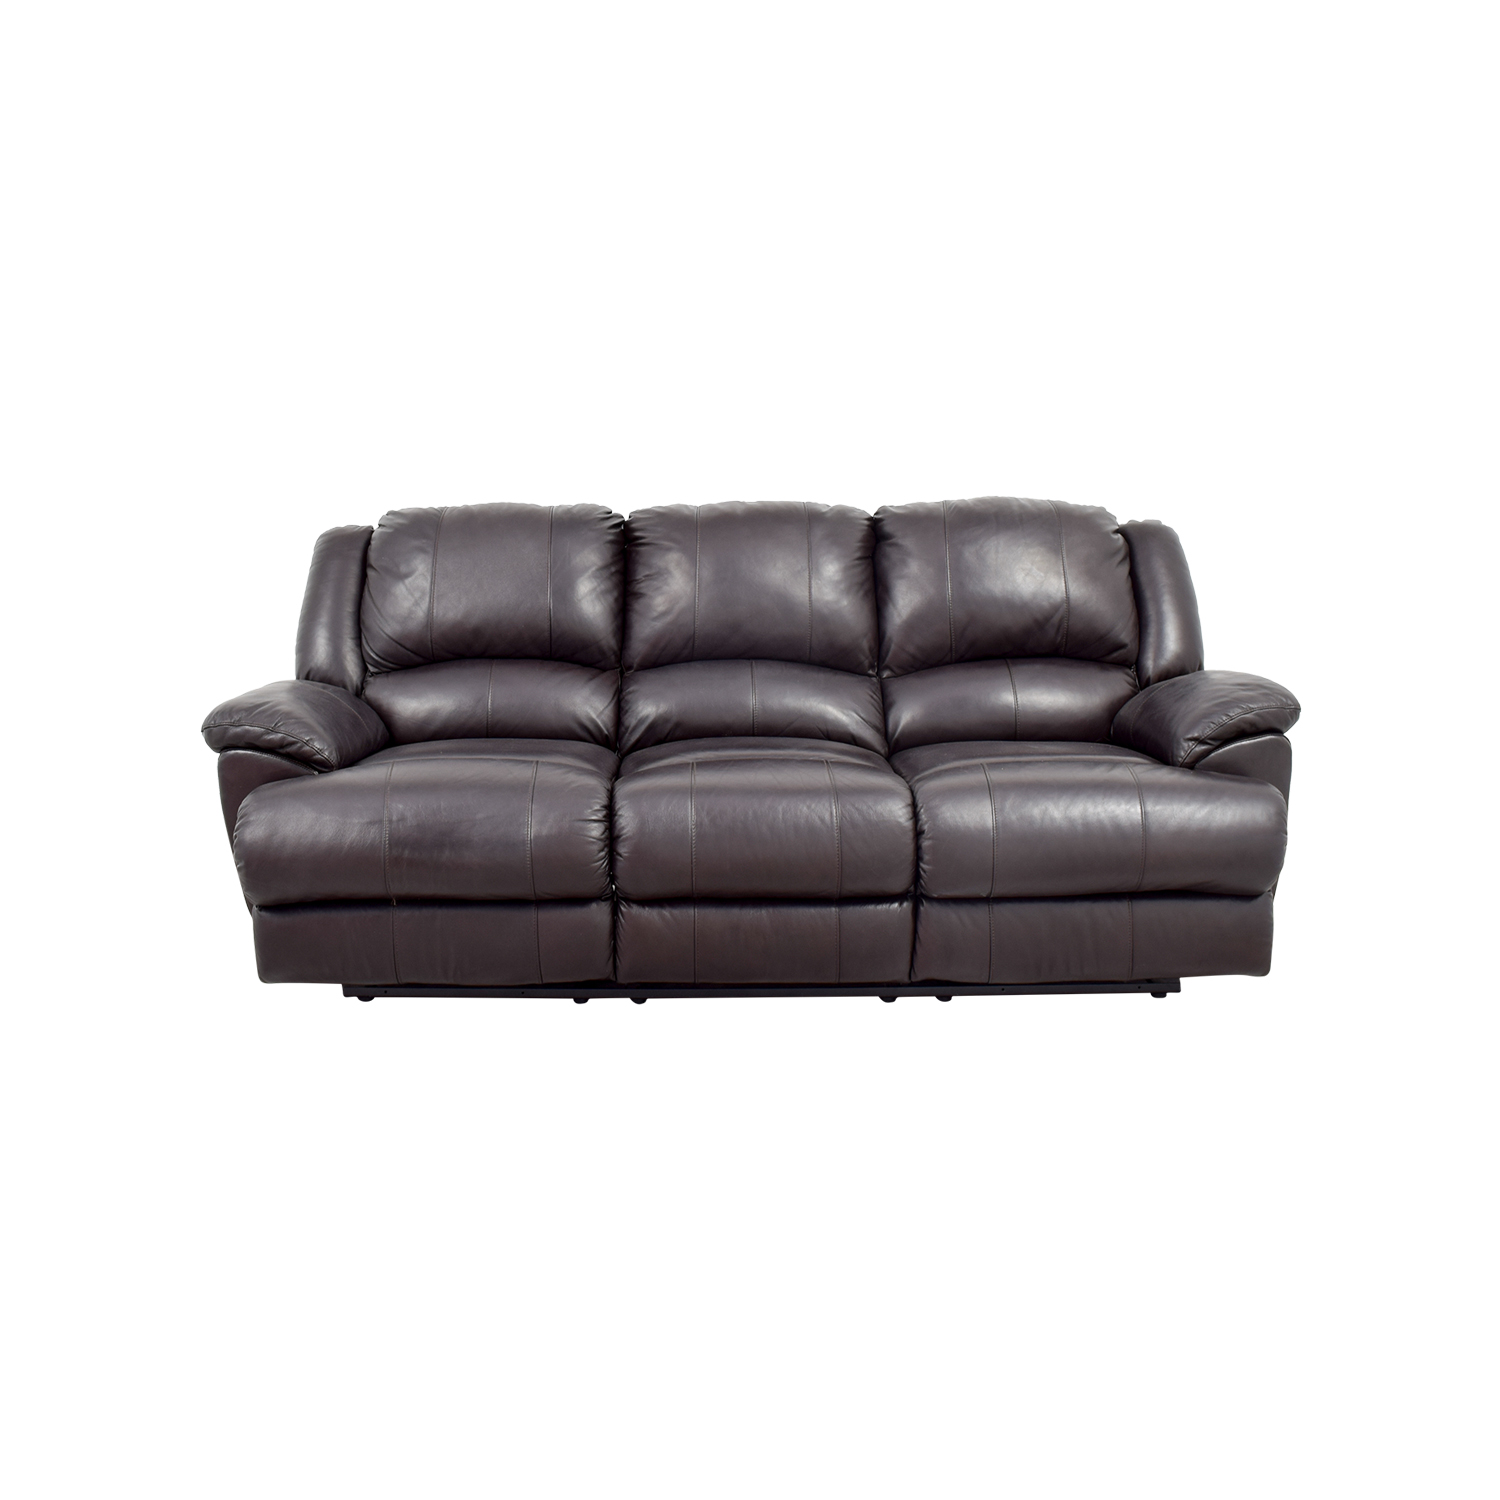 Jennifer Convertibles Leather Reclining Sofa Images Gallery 48 Off Brown Rh Furnishare Com